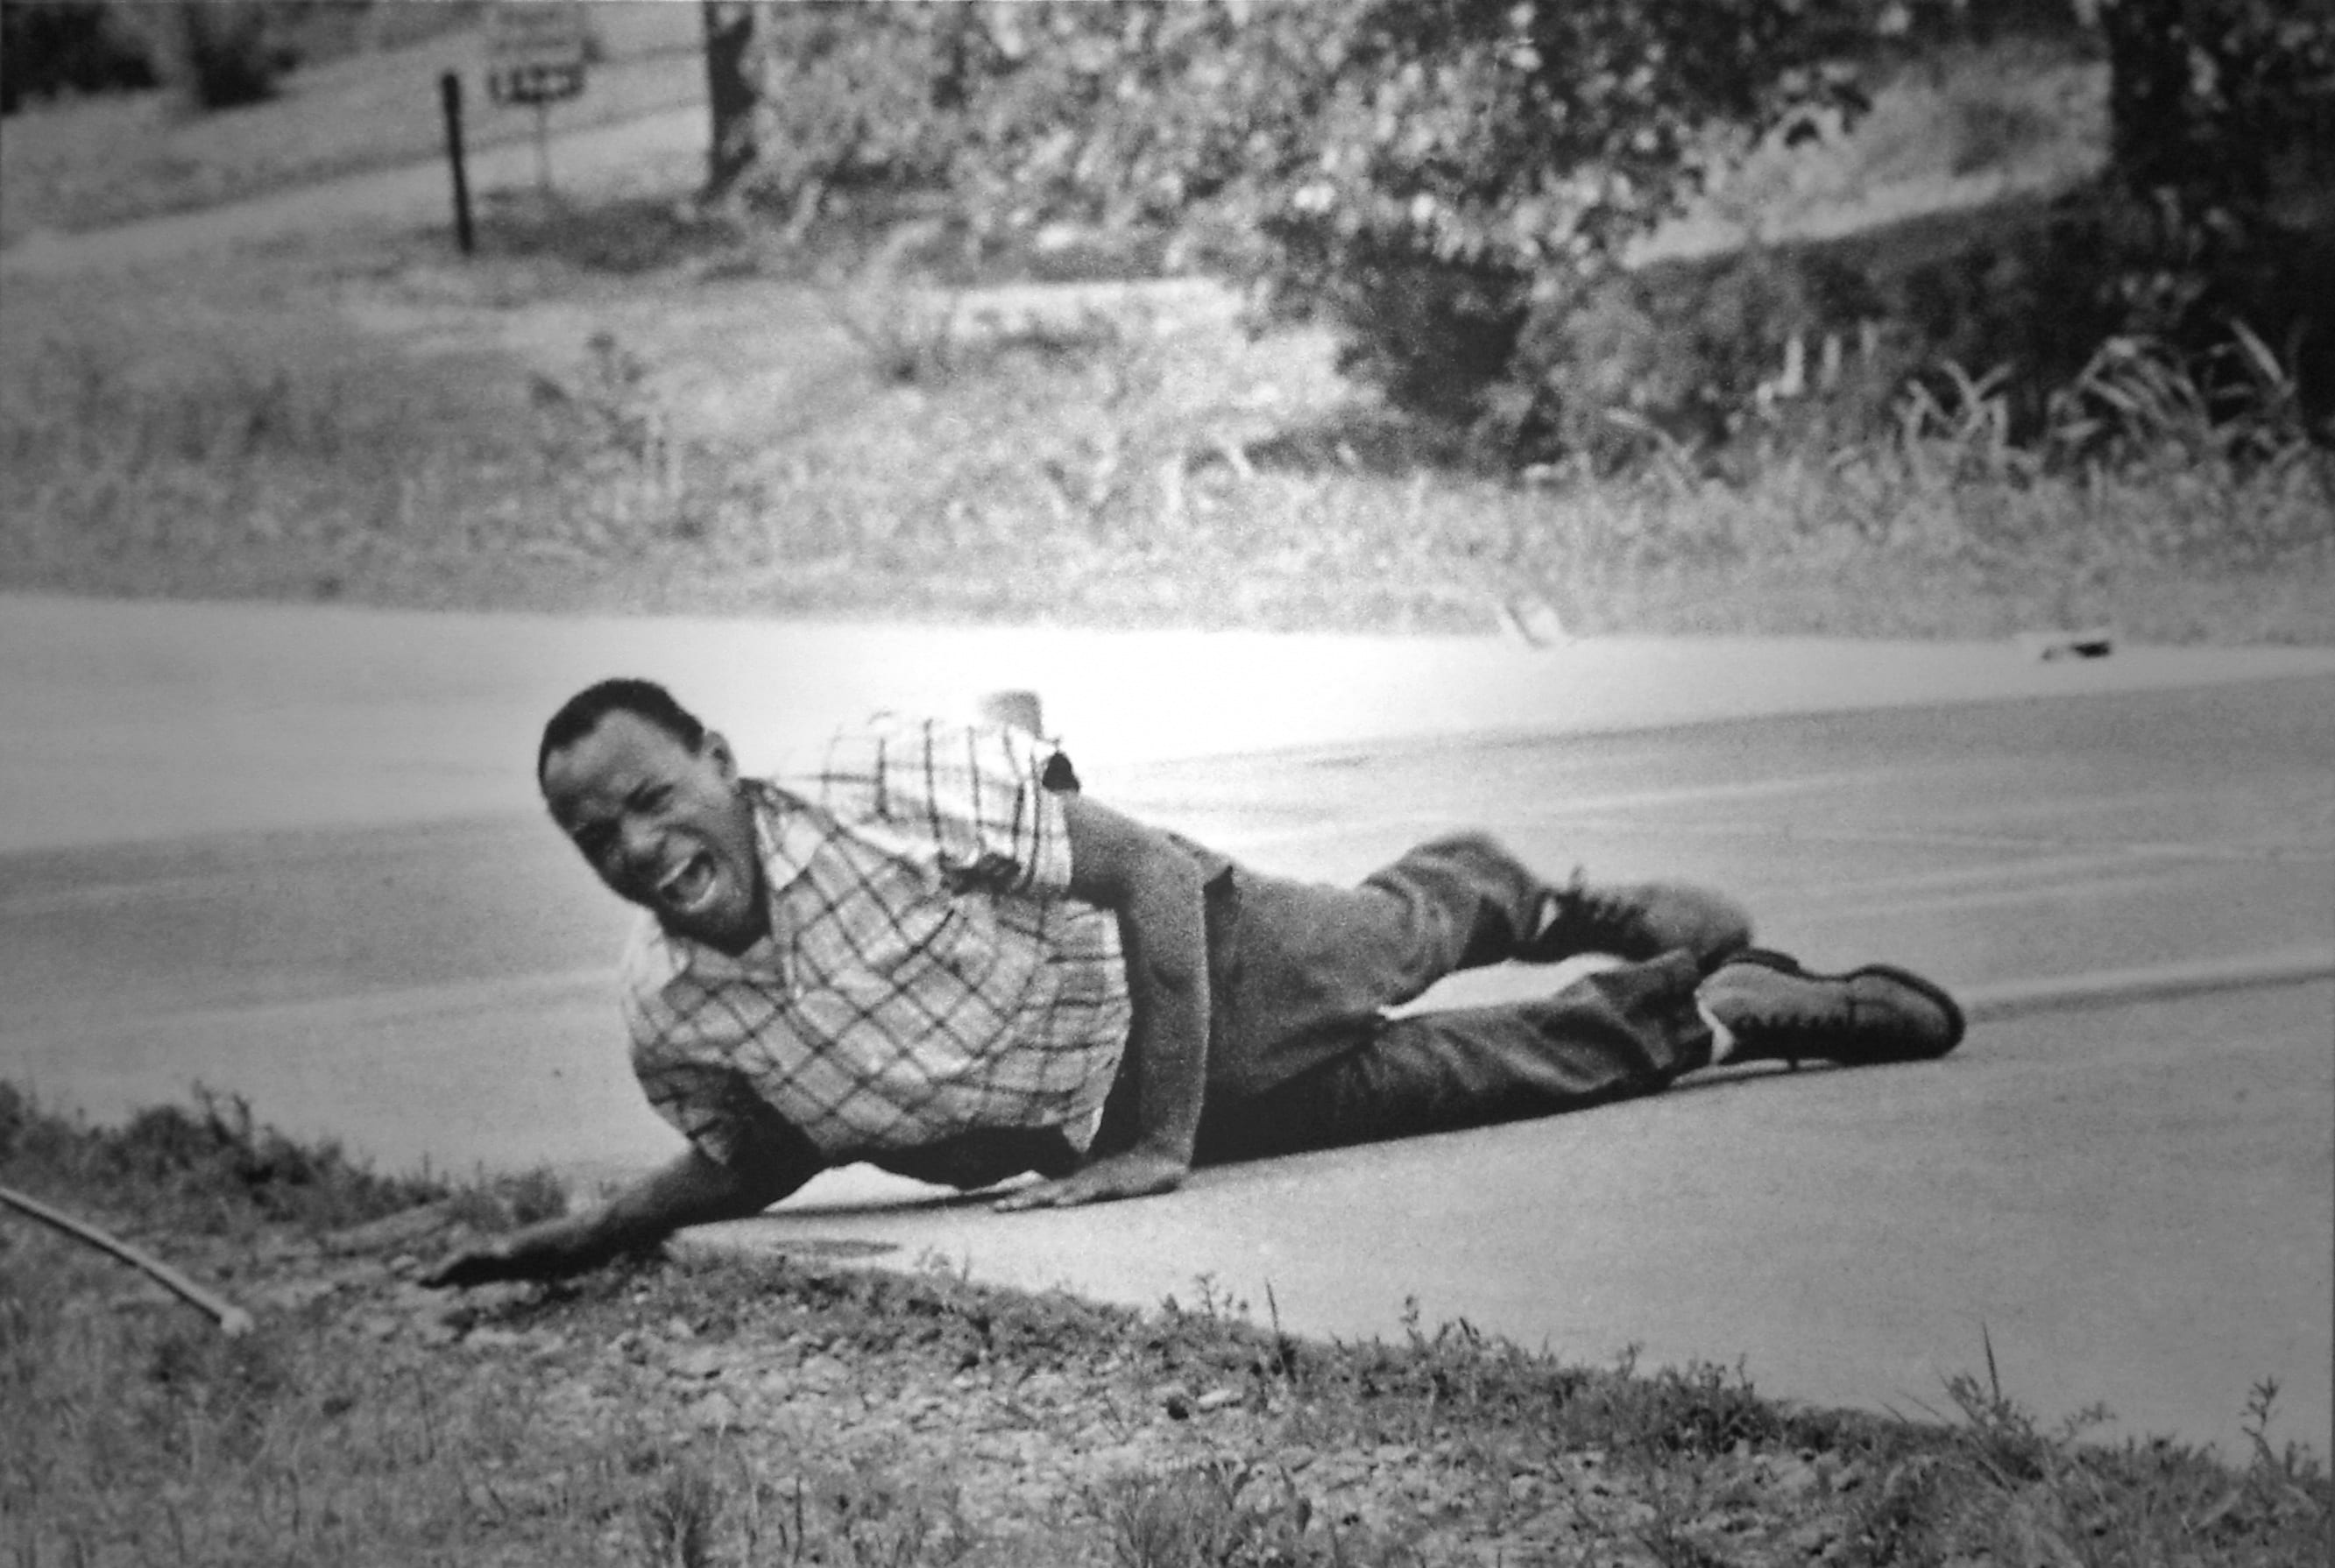 After being shot, a black American man sprawls on the ground